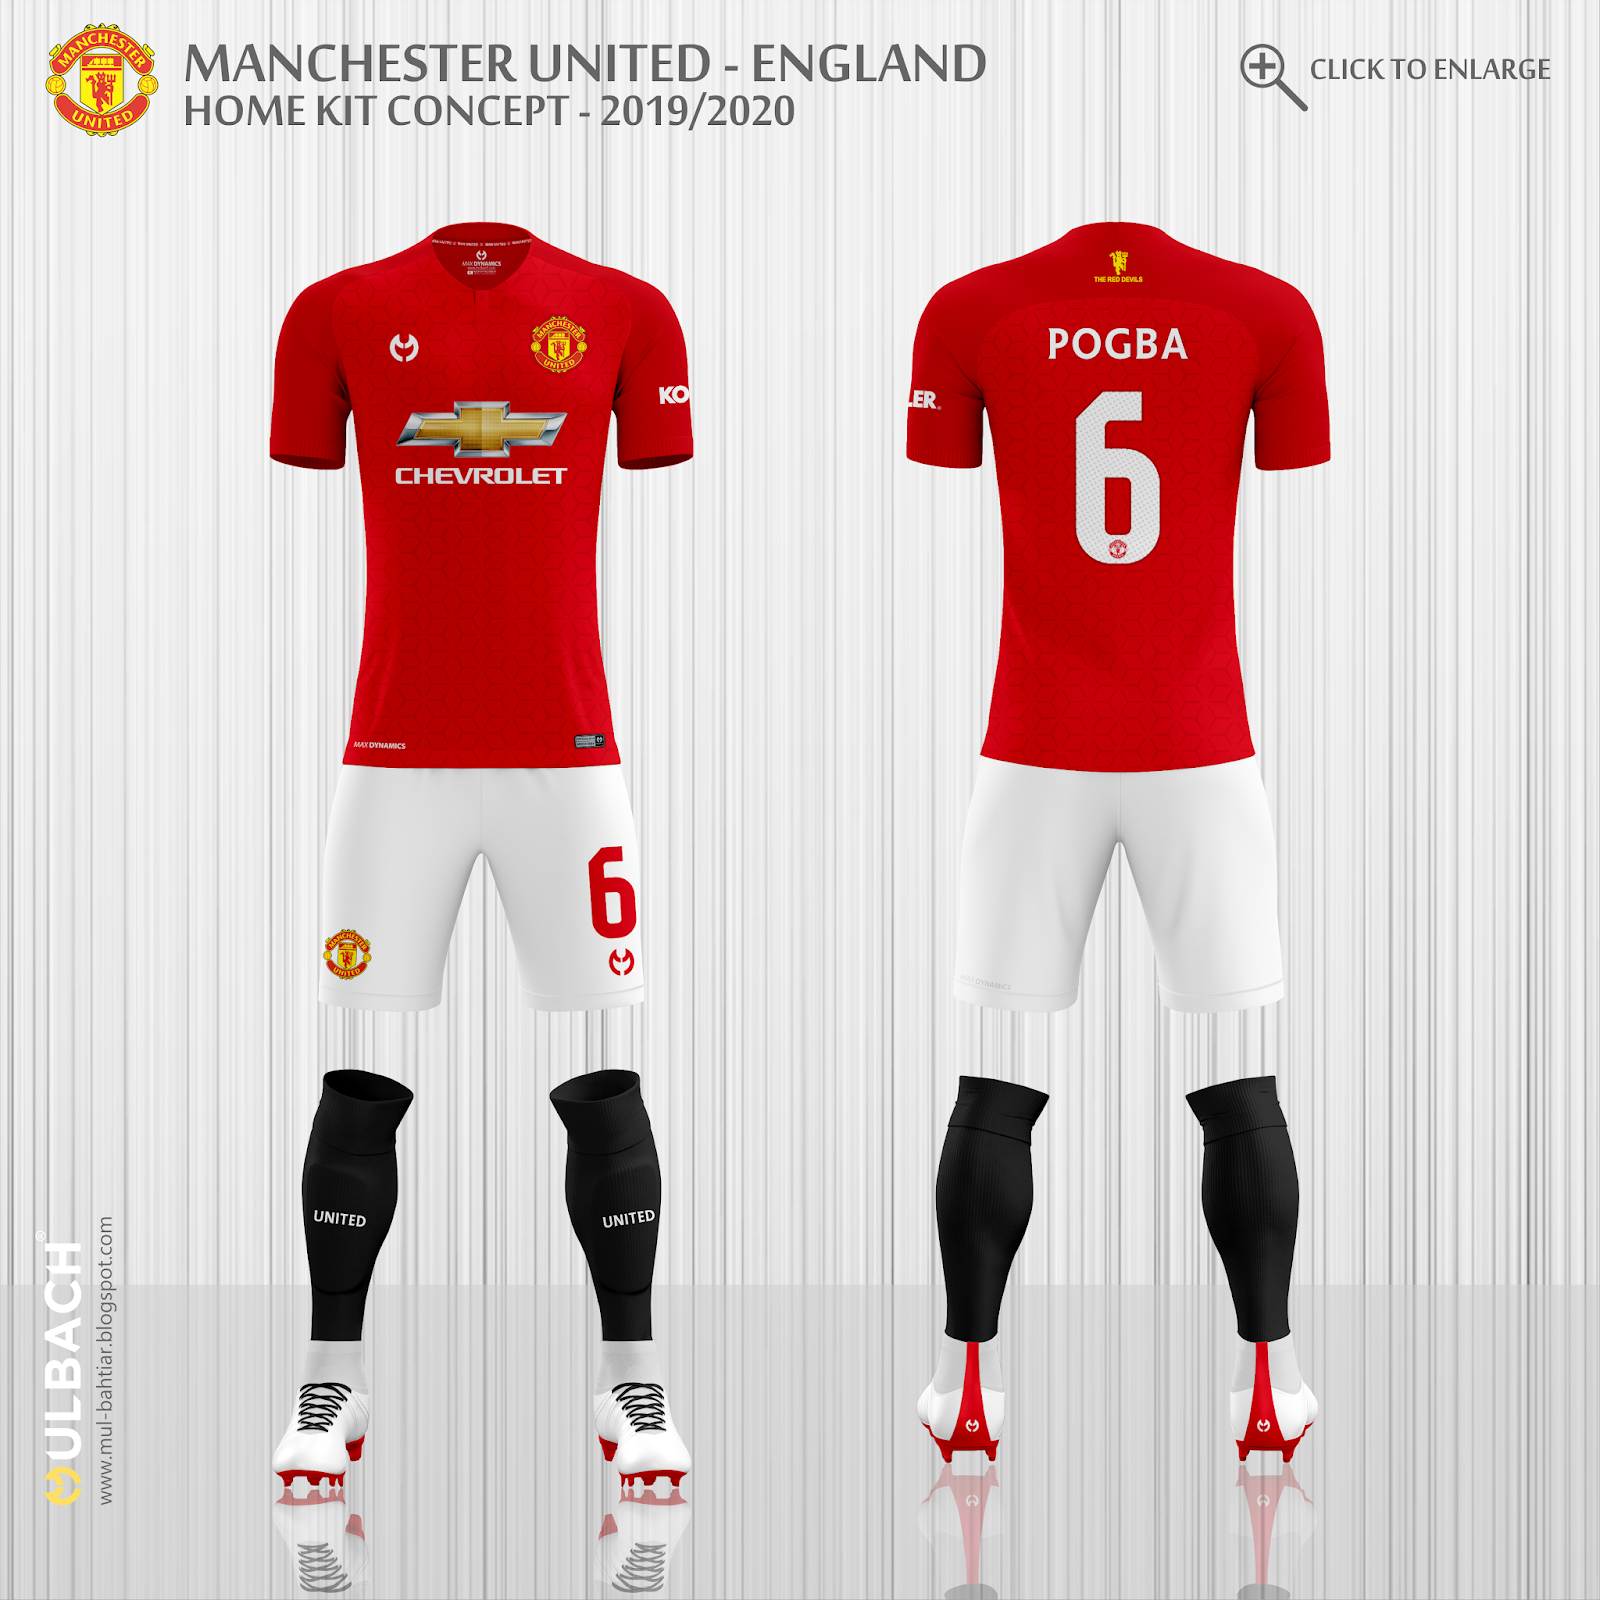 dfb65b6fb8b Manchester United 2019/2020 Home Kit Concept Front and Back View